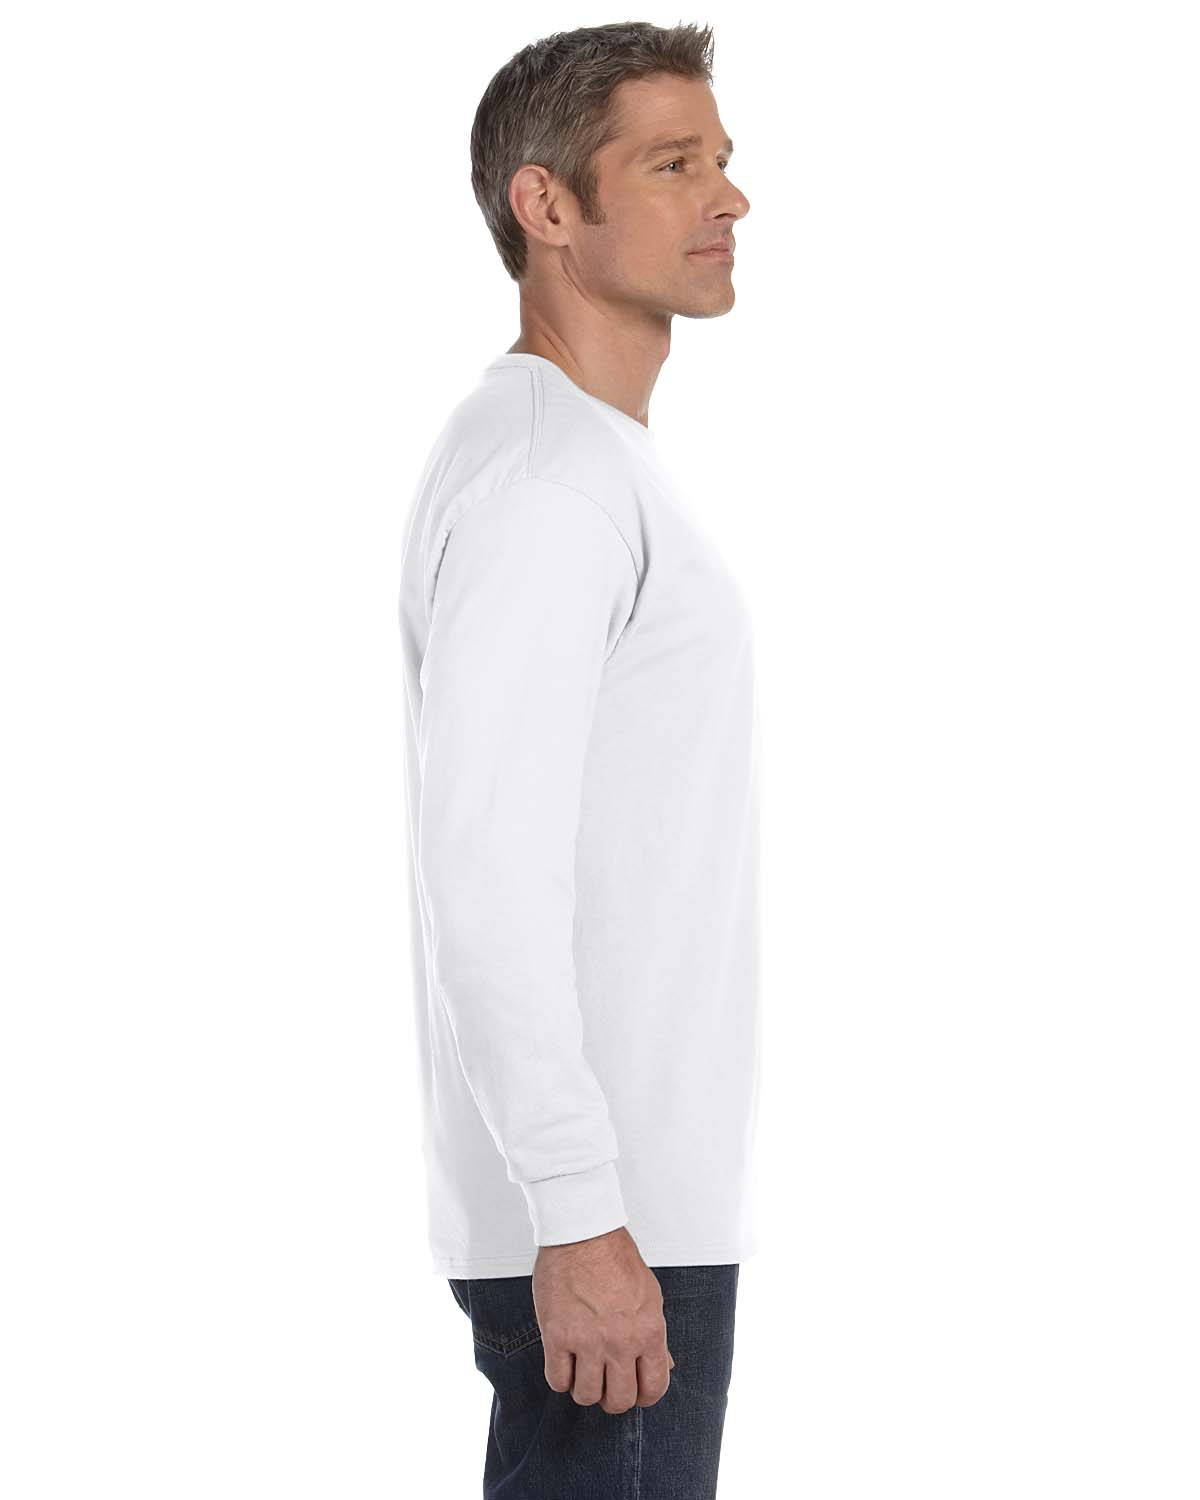 Gildan-Mens-T-Shirt-Long-Sleeve-Heavy-Cotton-5-3-oz-S-XL-R-G540-5400 thumbnail 57